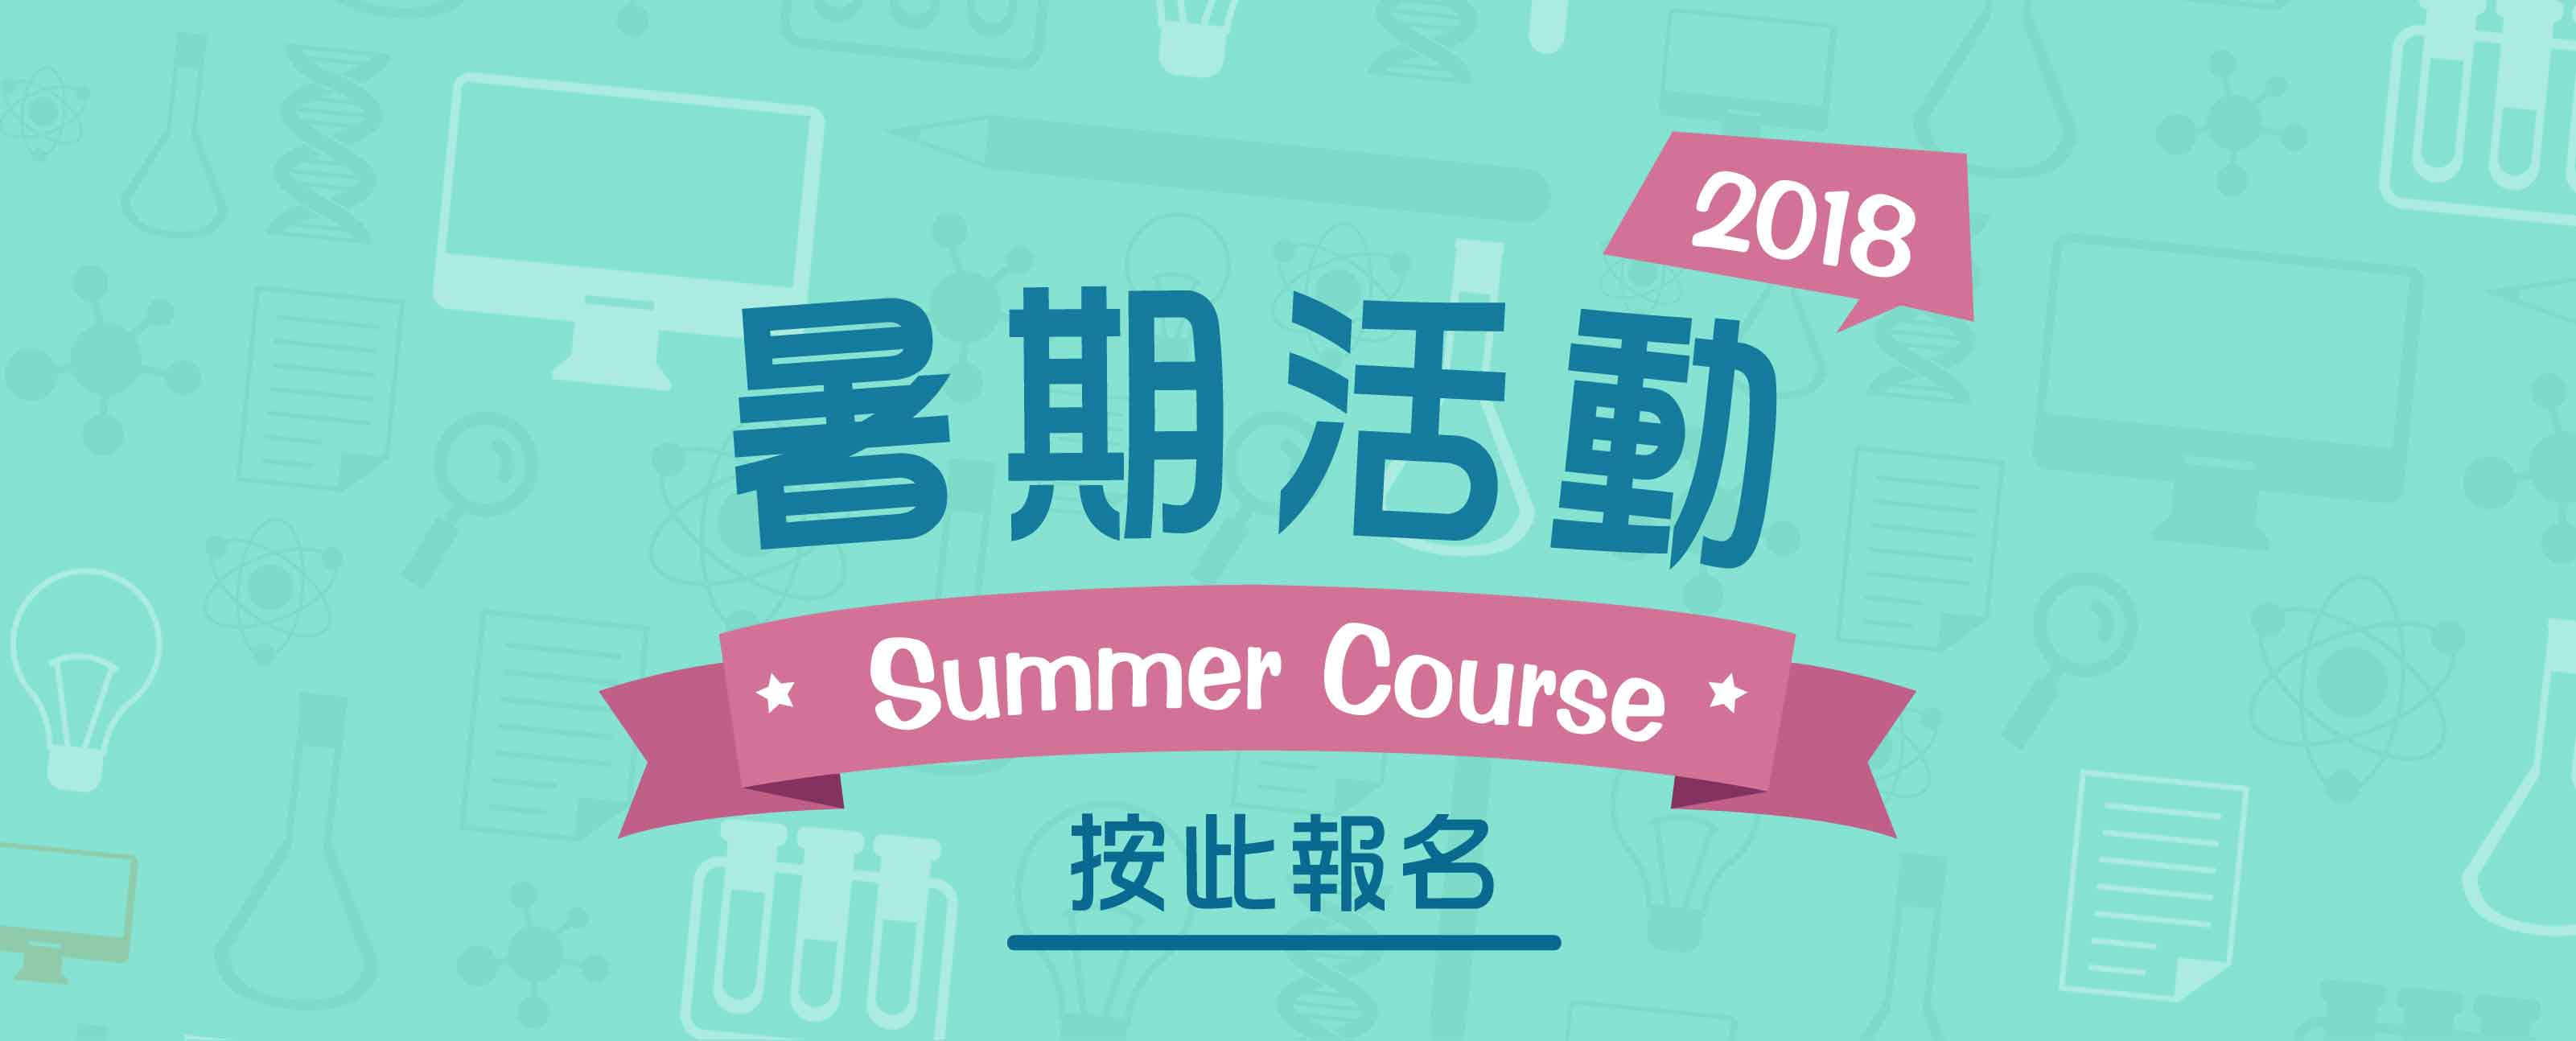 Summer course_mobile-01